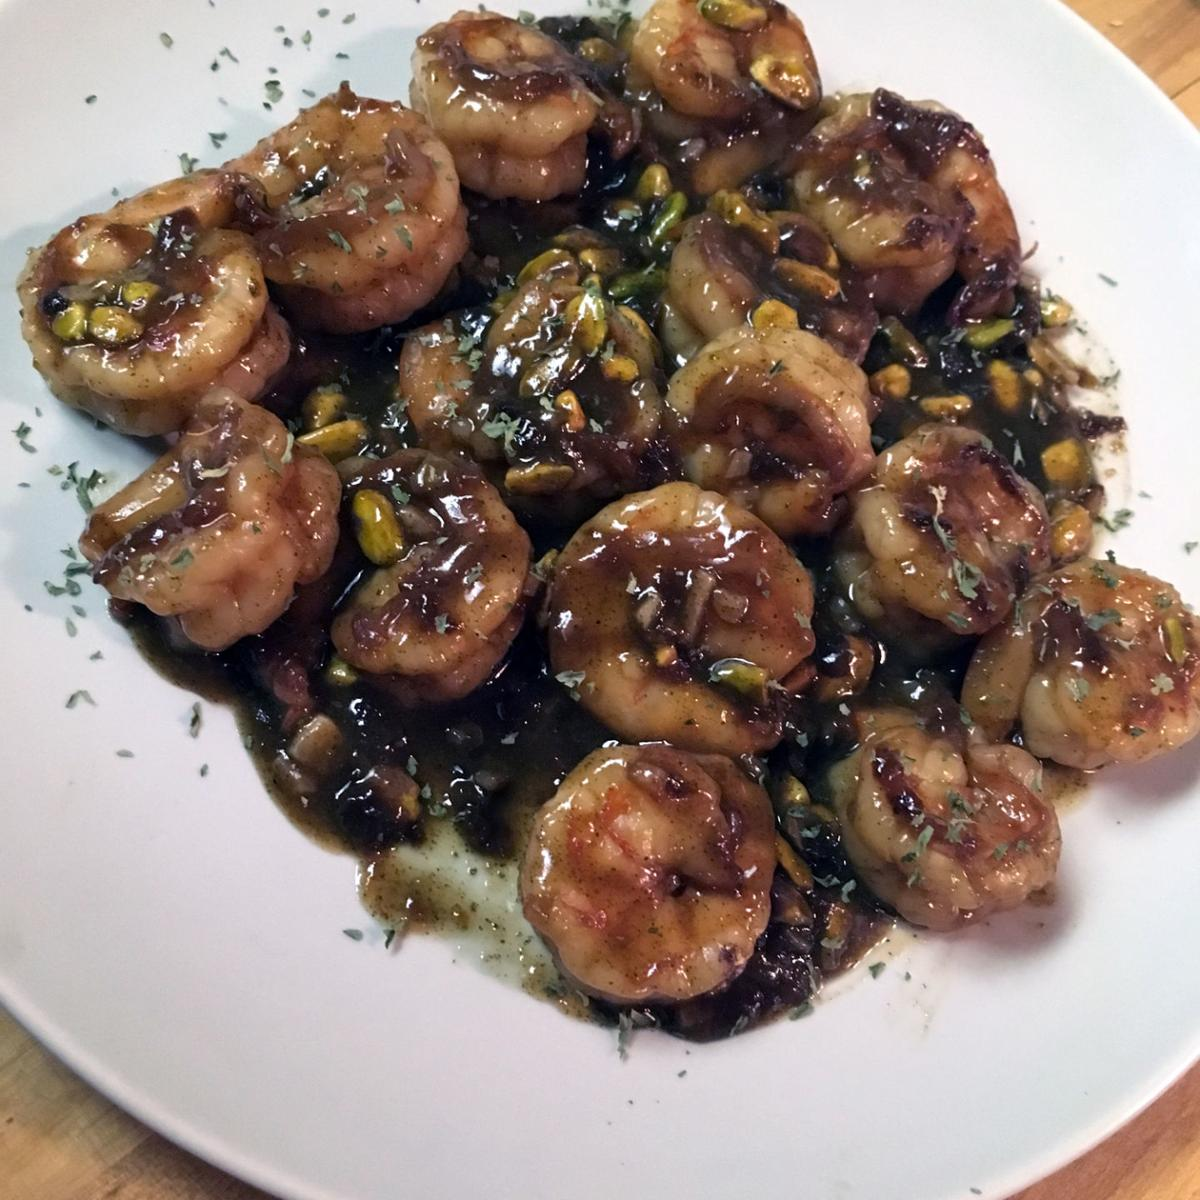 Honey-Garlic Green Tea Shrimp